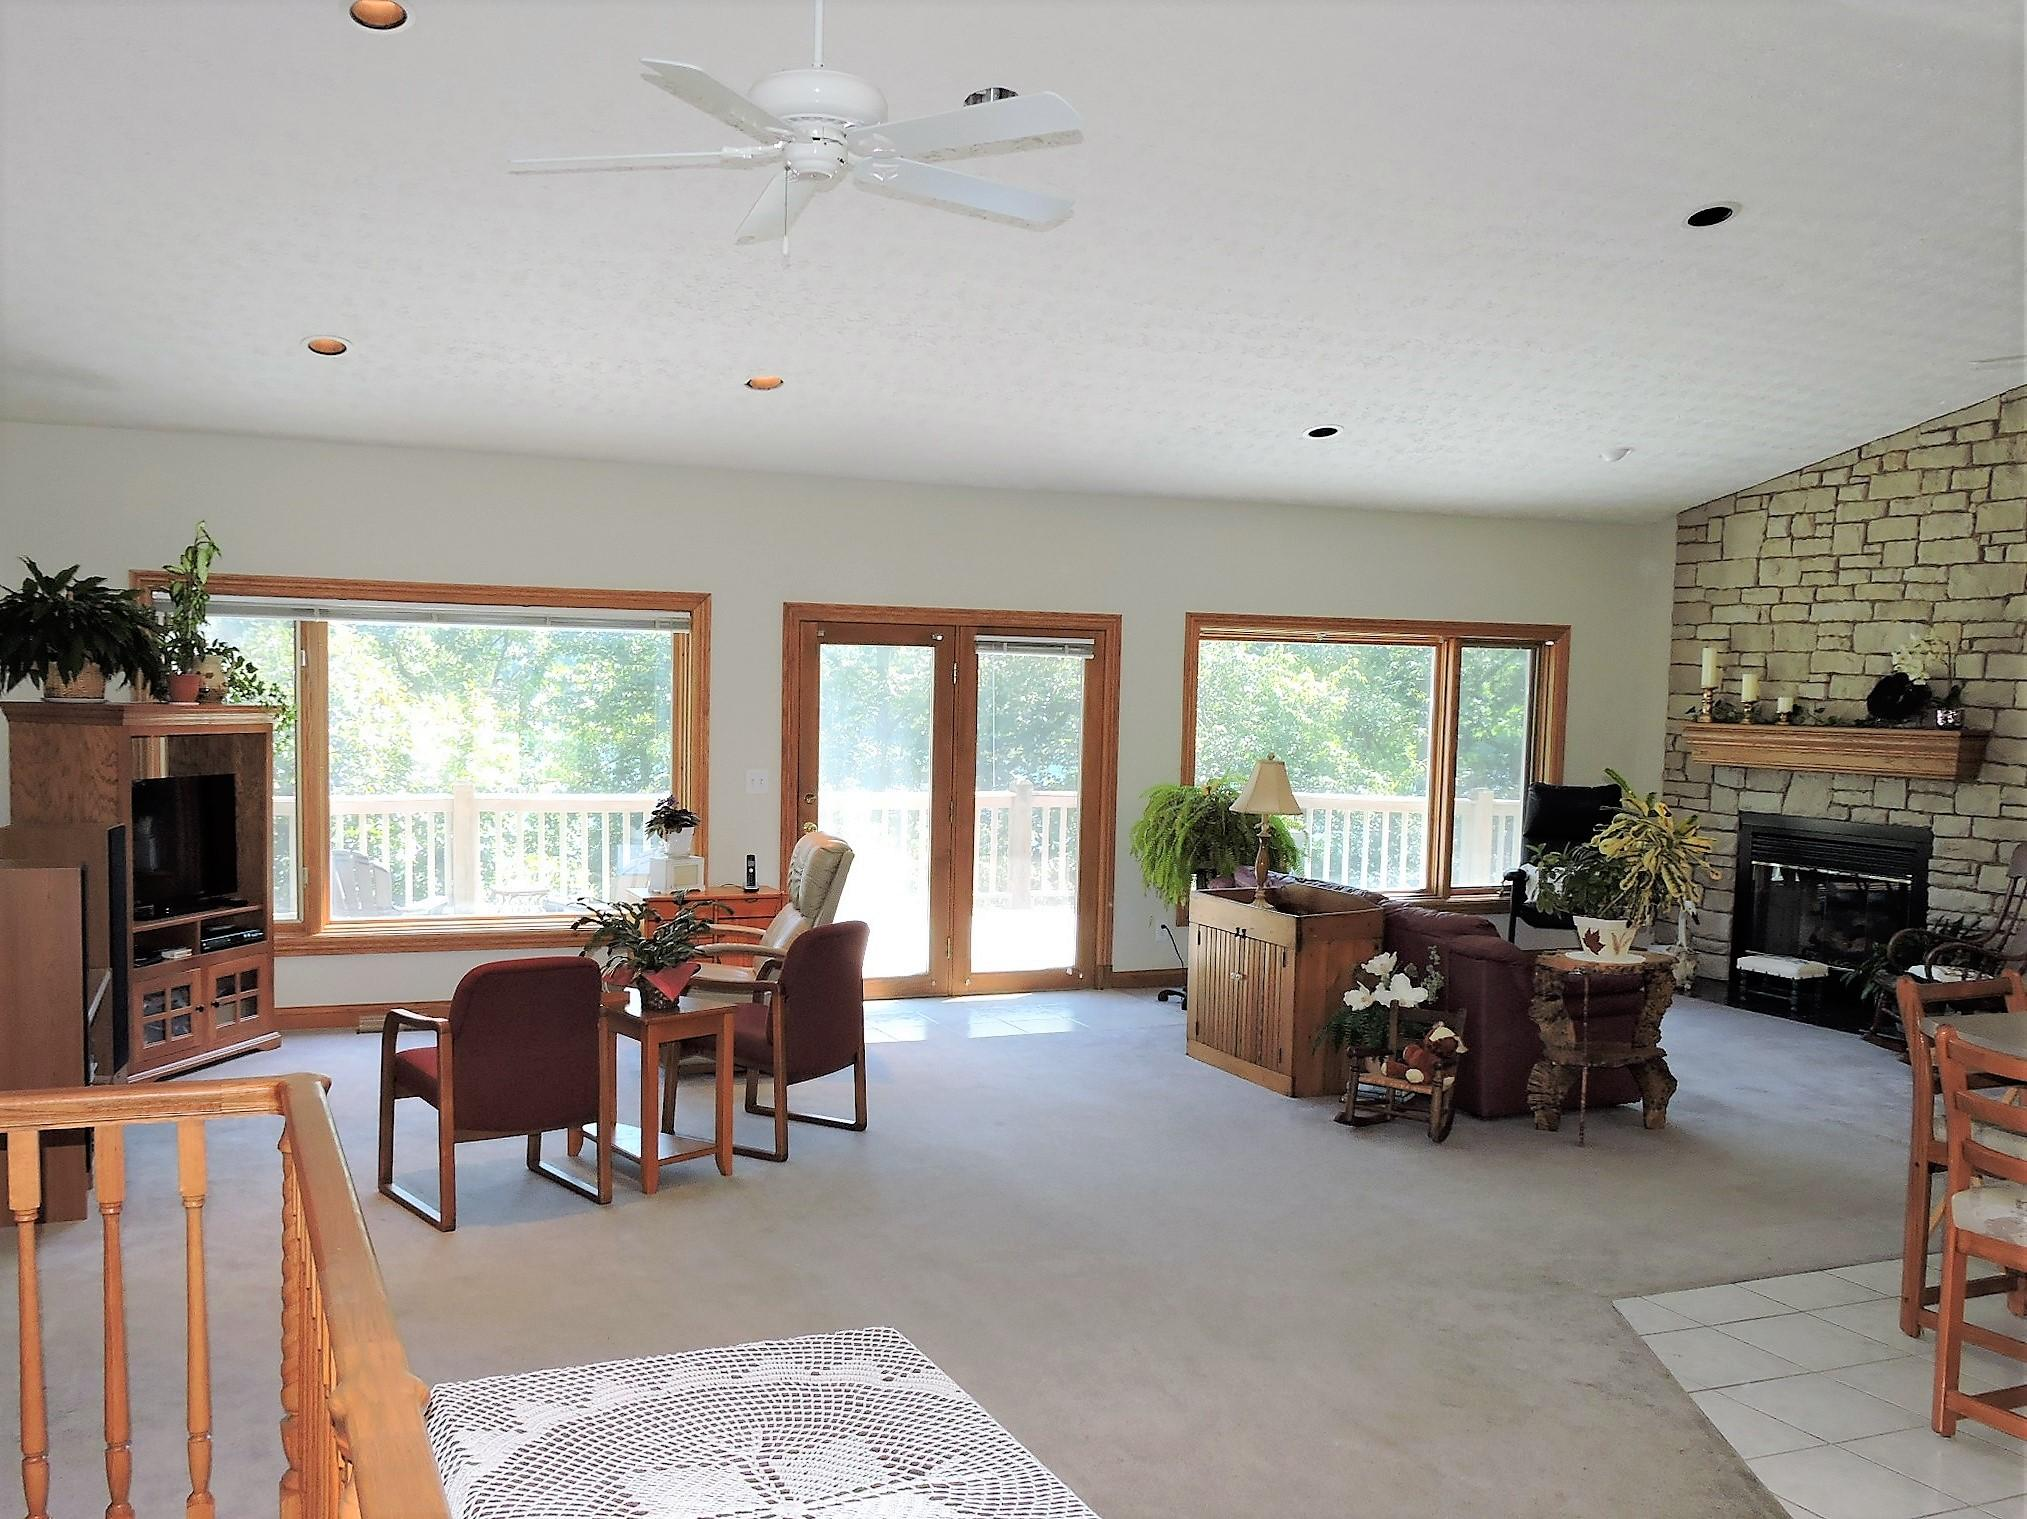 1691 Cove Point Rd: